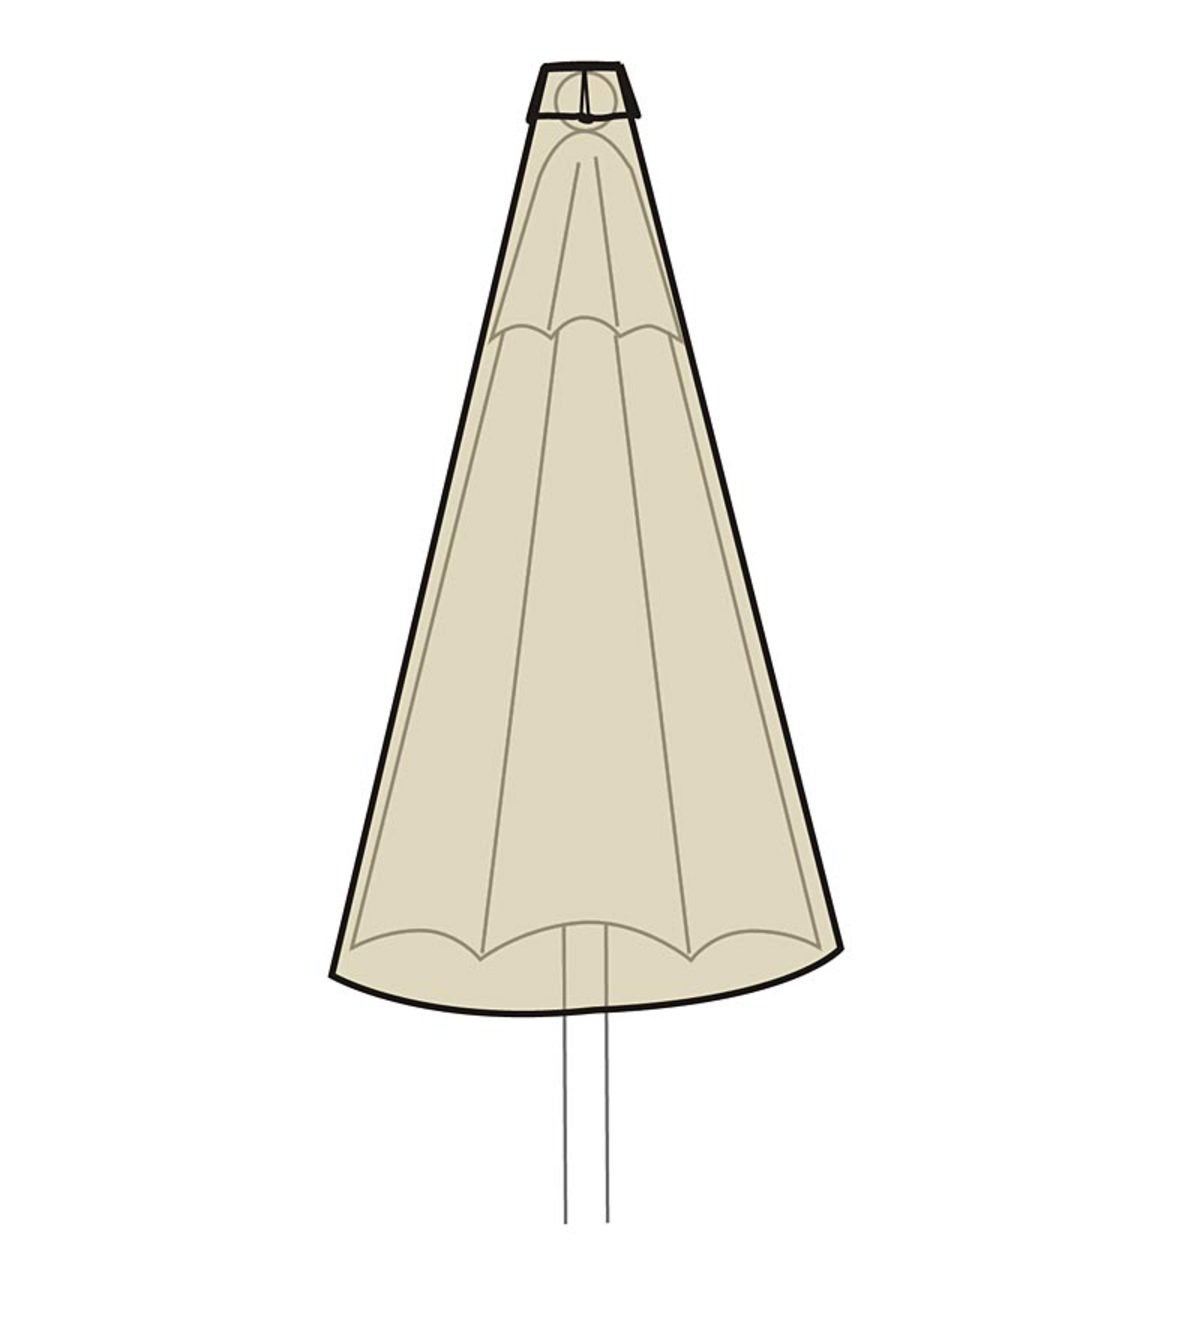 Deluxe Umbrella Cover - Tan